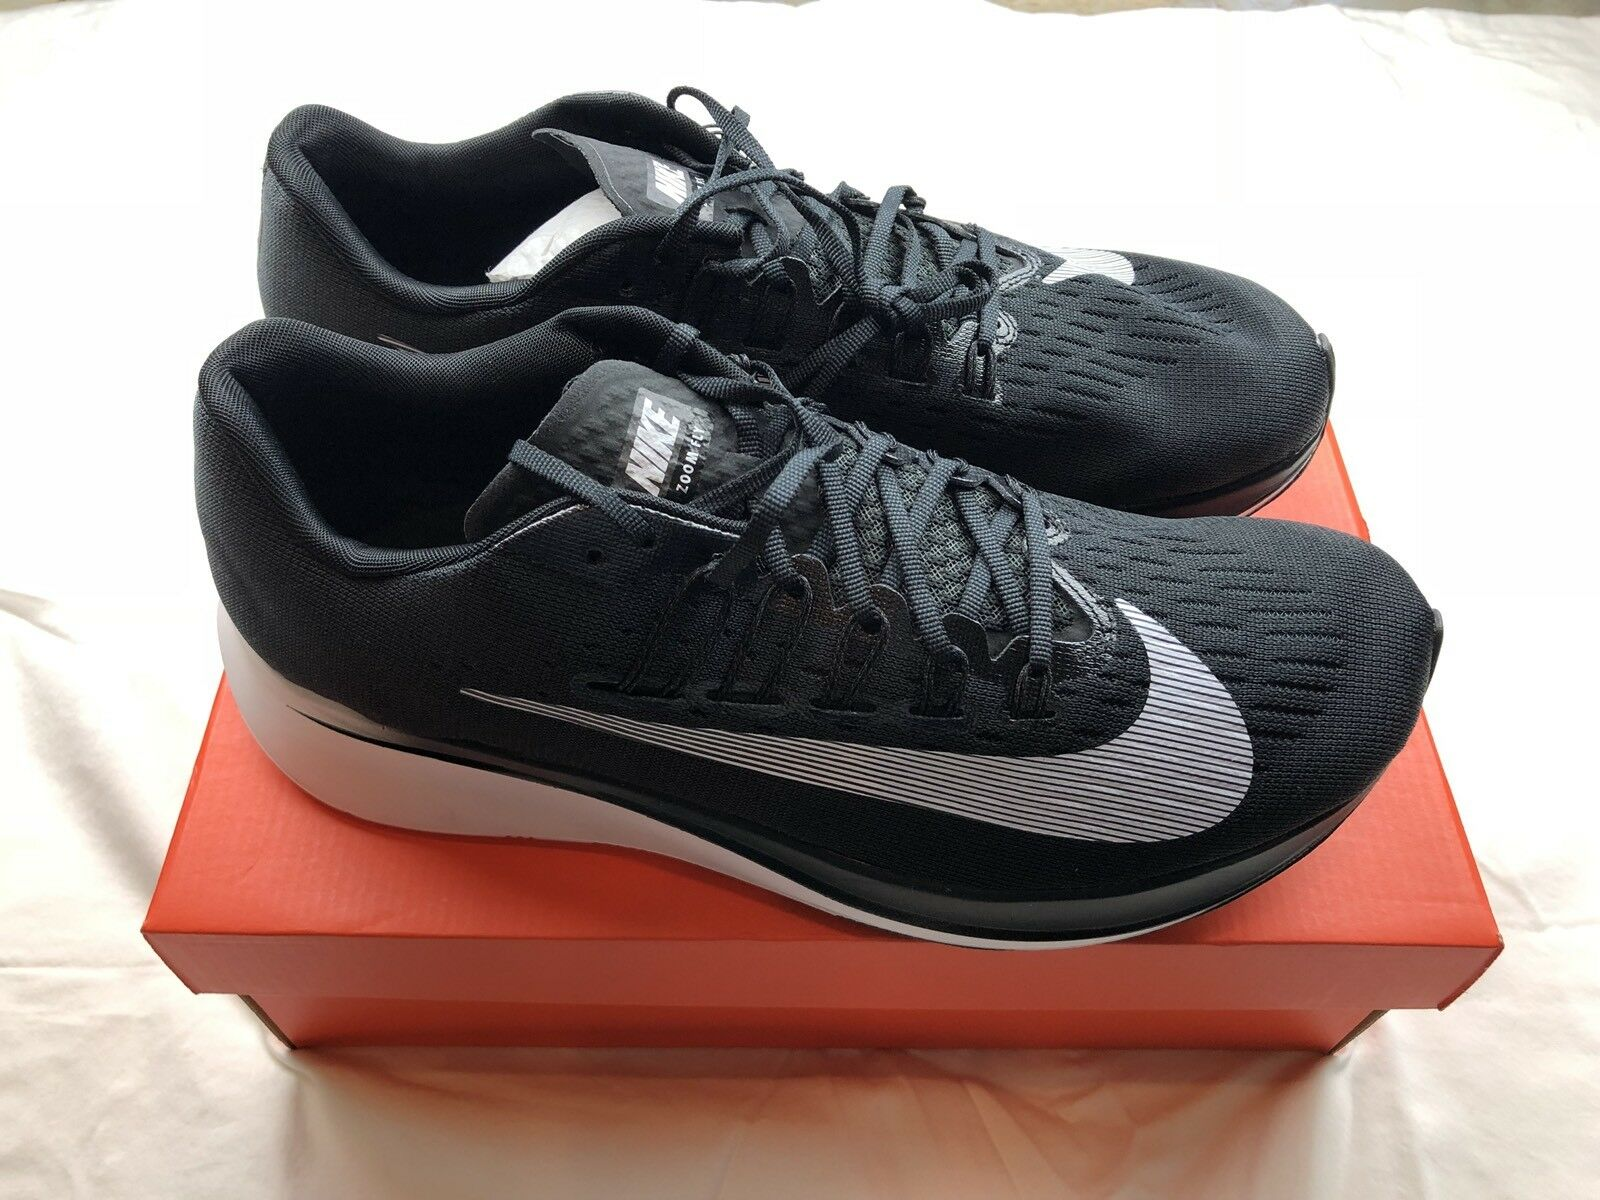 NiNike Zoom Fly Mens Running Shoes Black White Anthracite